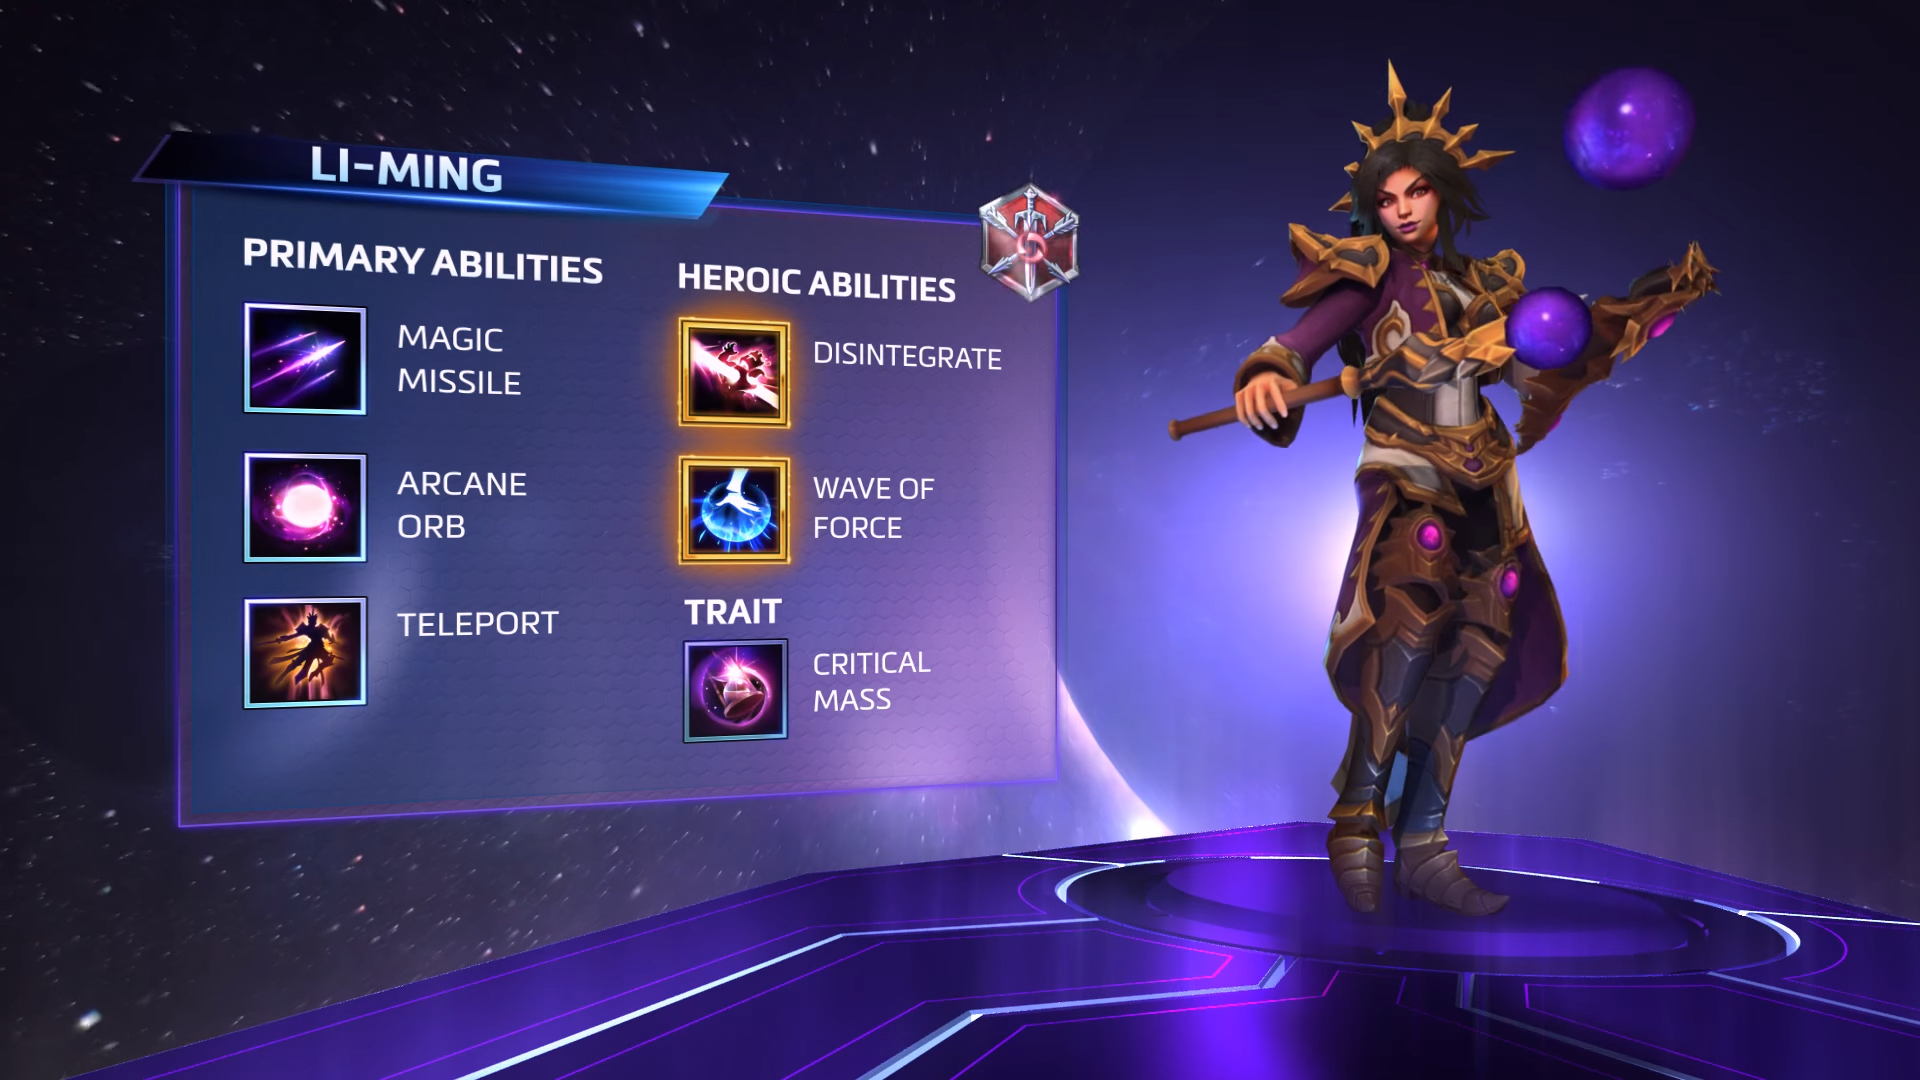 Heroes Of The Storm Videos Spotlight Li Ming And Tell The